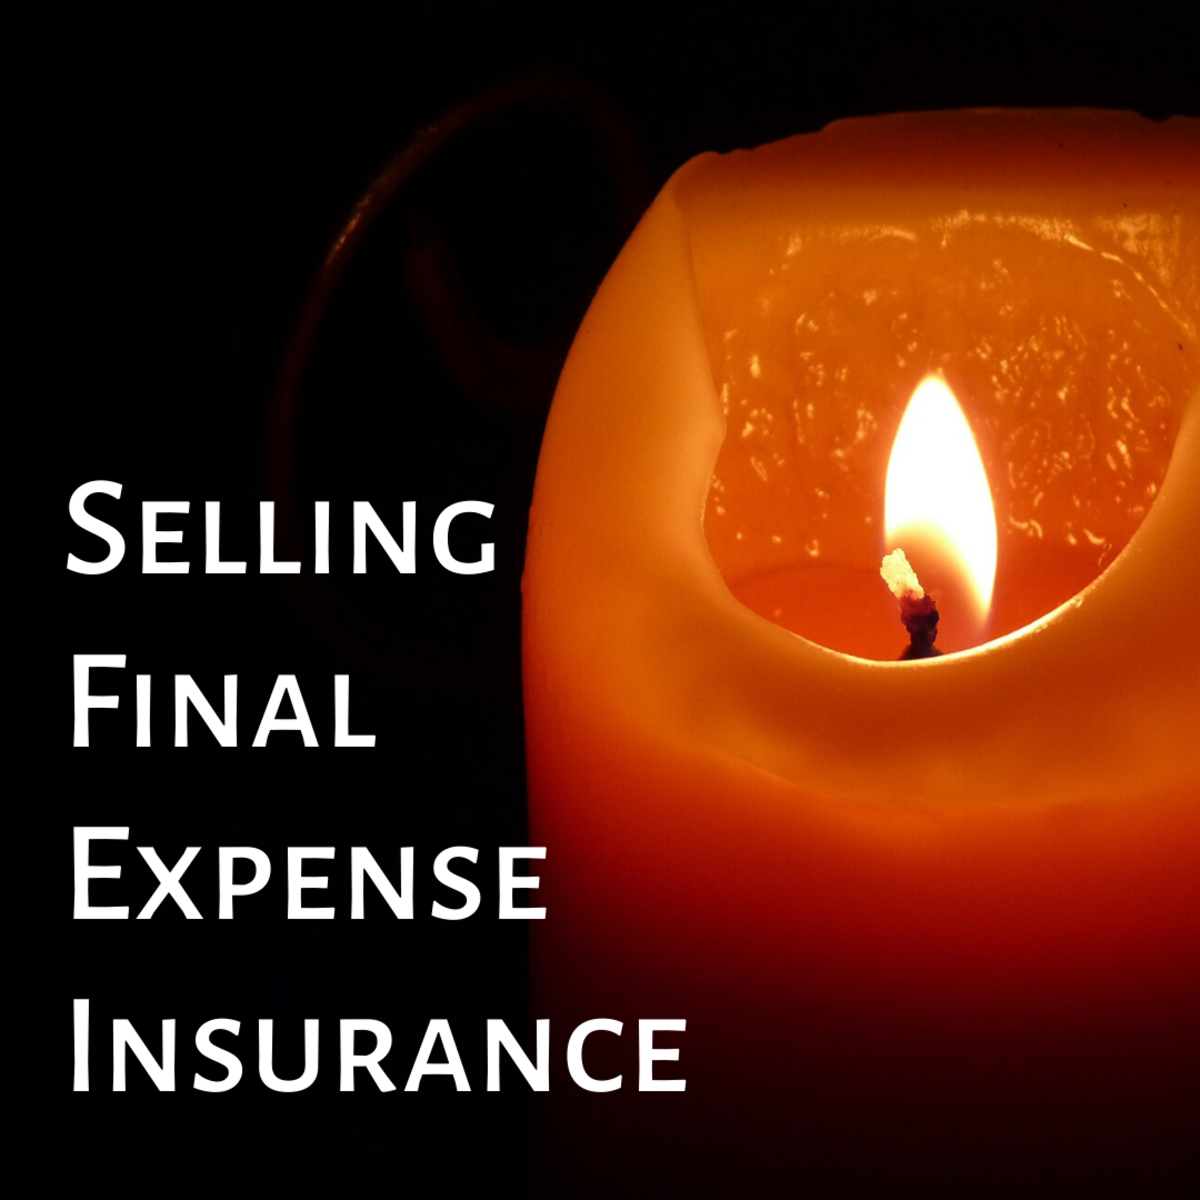 Learn about selling final expense insurance as an independent insurance agent.